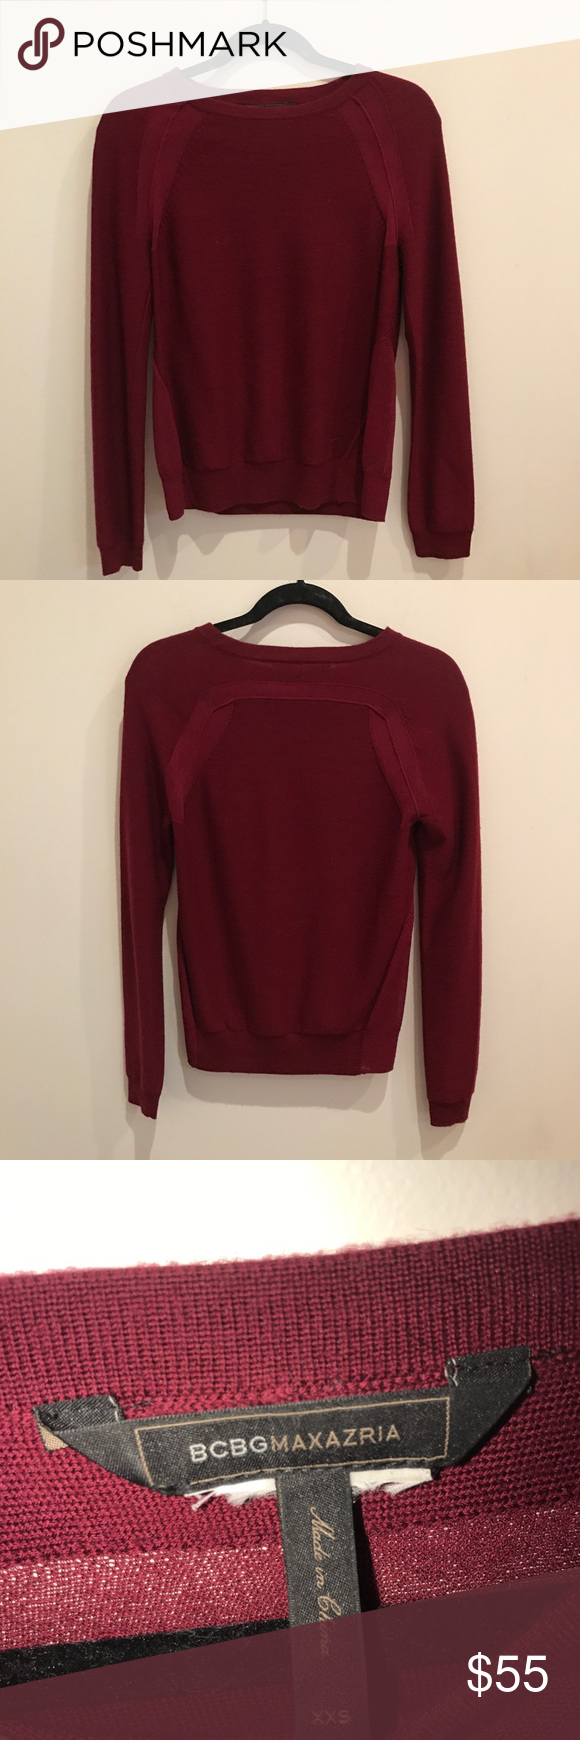 BCBG sweater Burgundy sweater super cute on! BCBGMaxAzria Sweaters ...